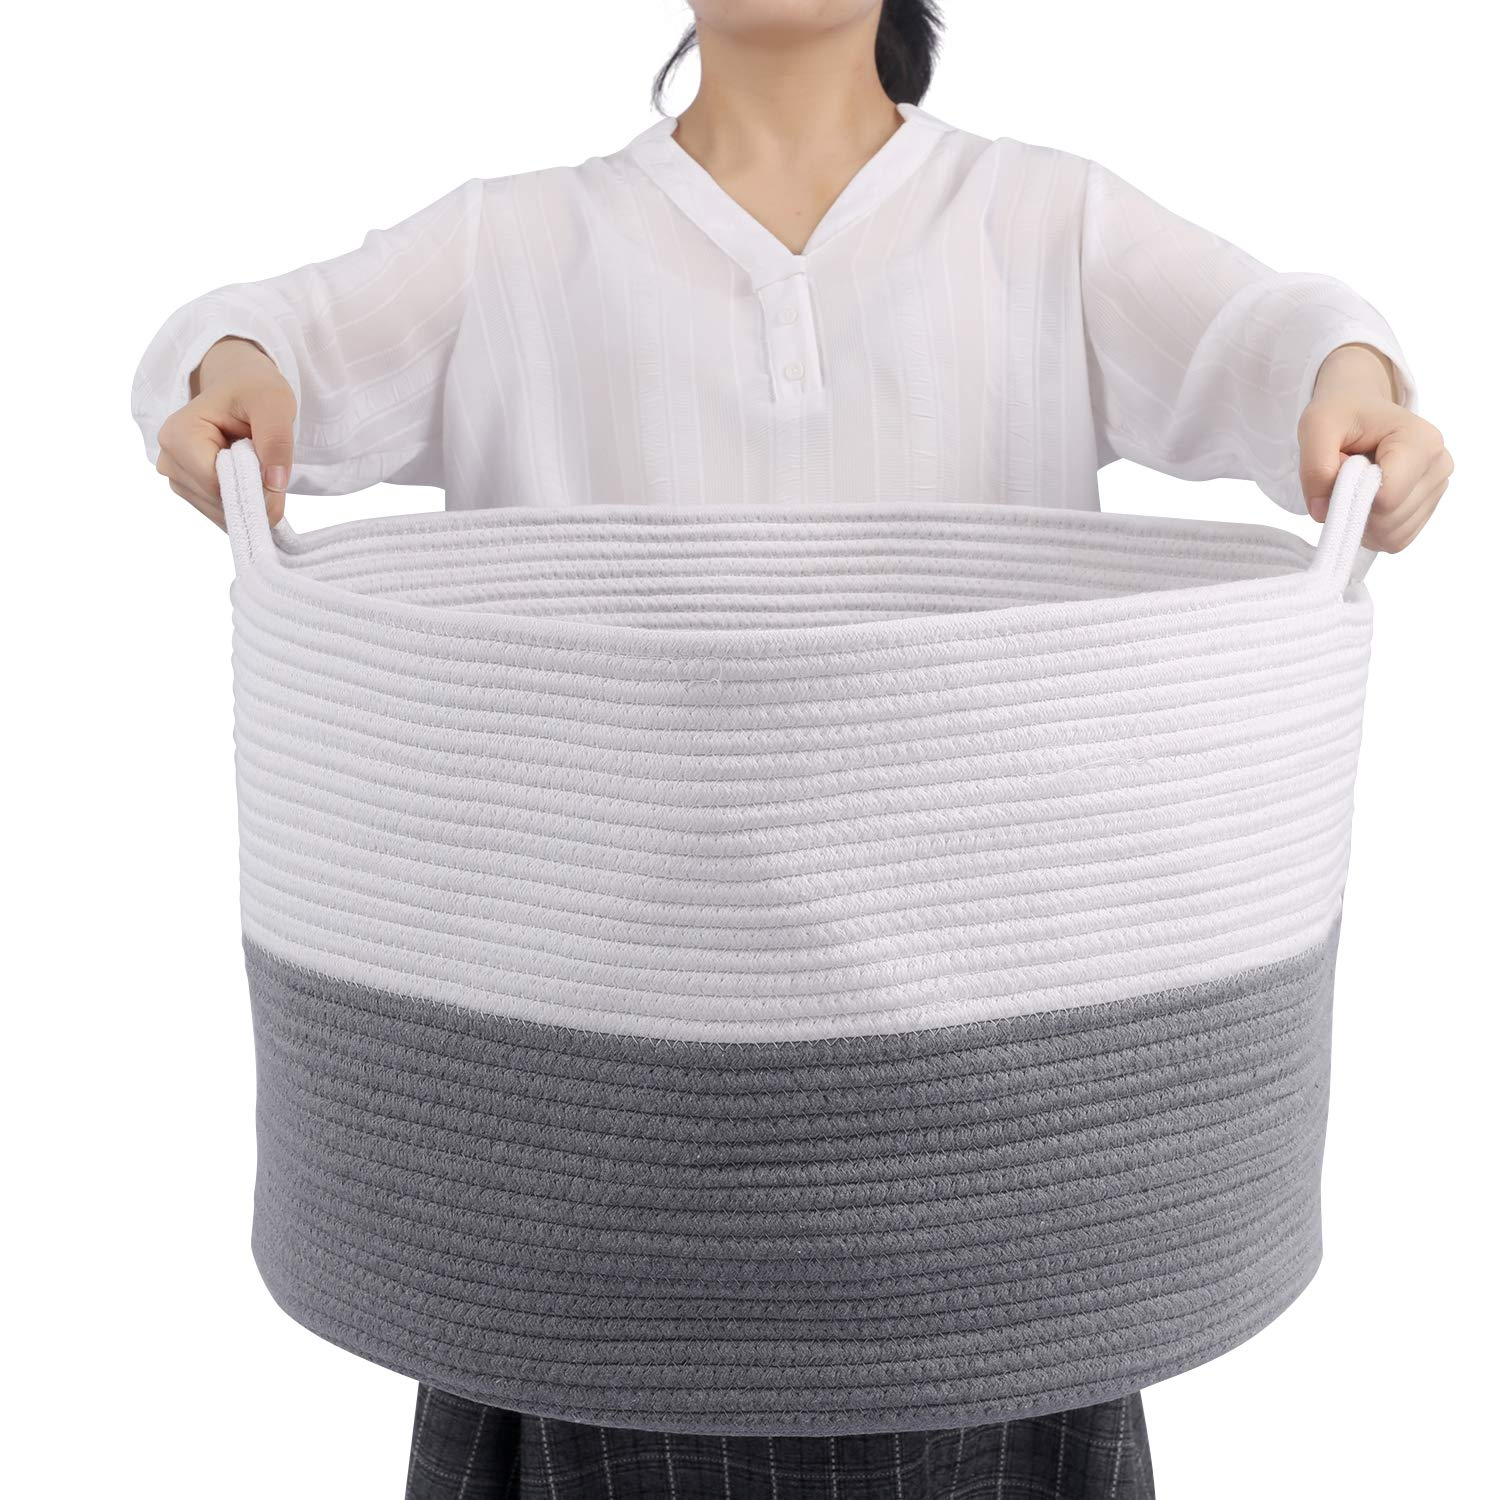 Extra Large Blanket Storage Basket in Living Room, 22'' x 14'' Cotton Rope Basket for Toys, Woven Laundry Basket with Handles, Mixed Grey and White Storage Woven Basket